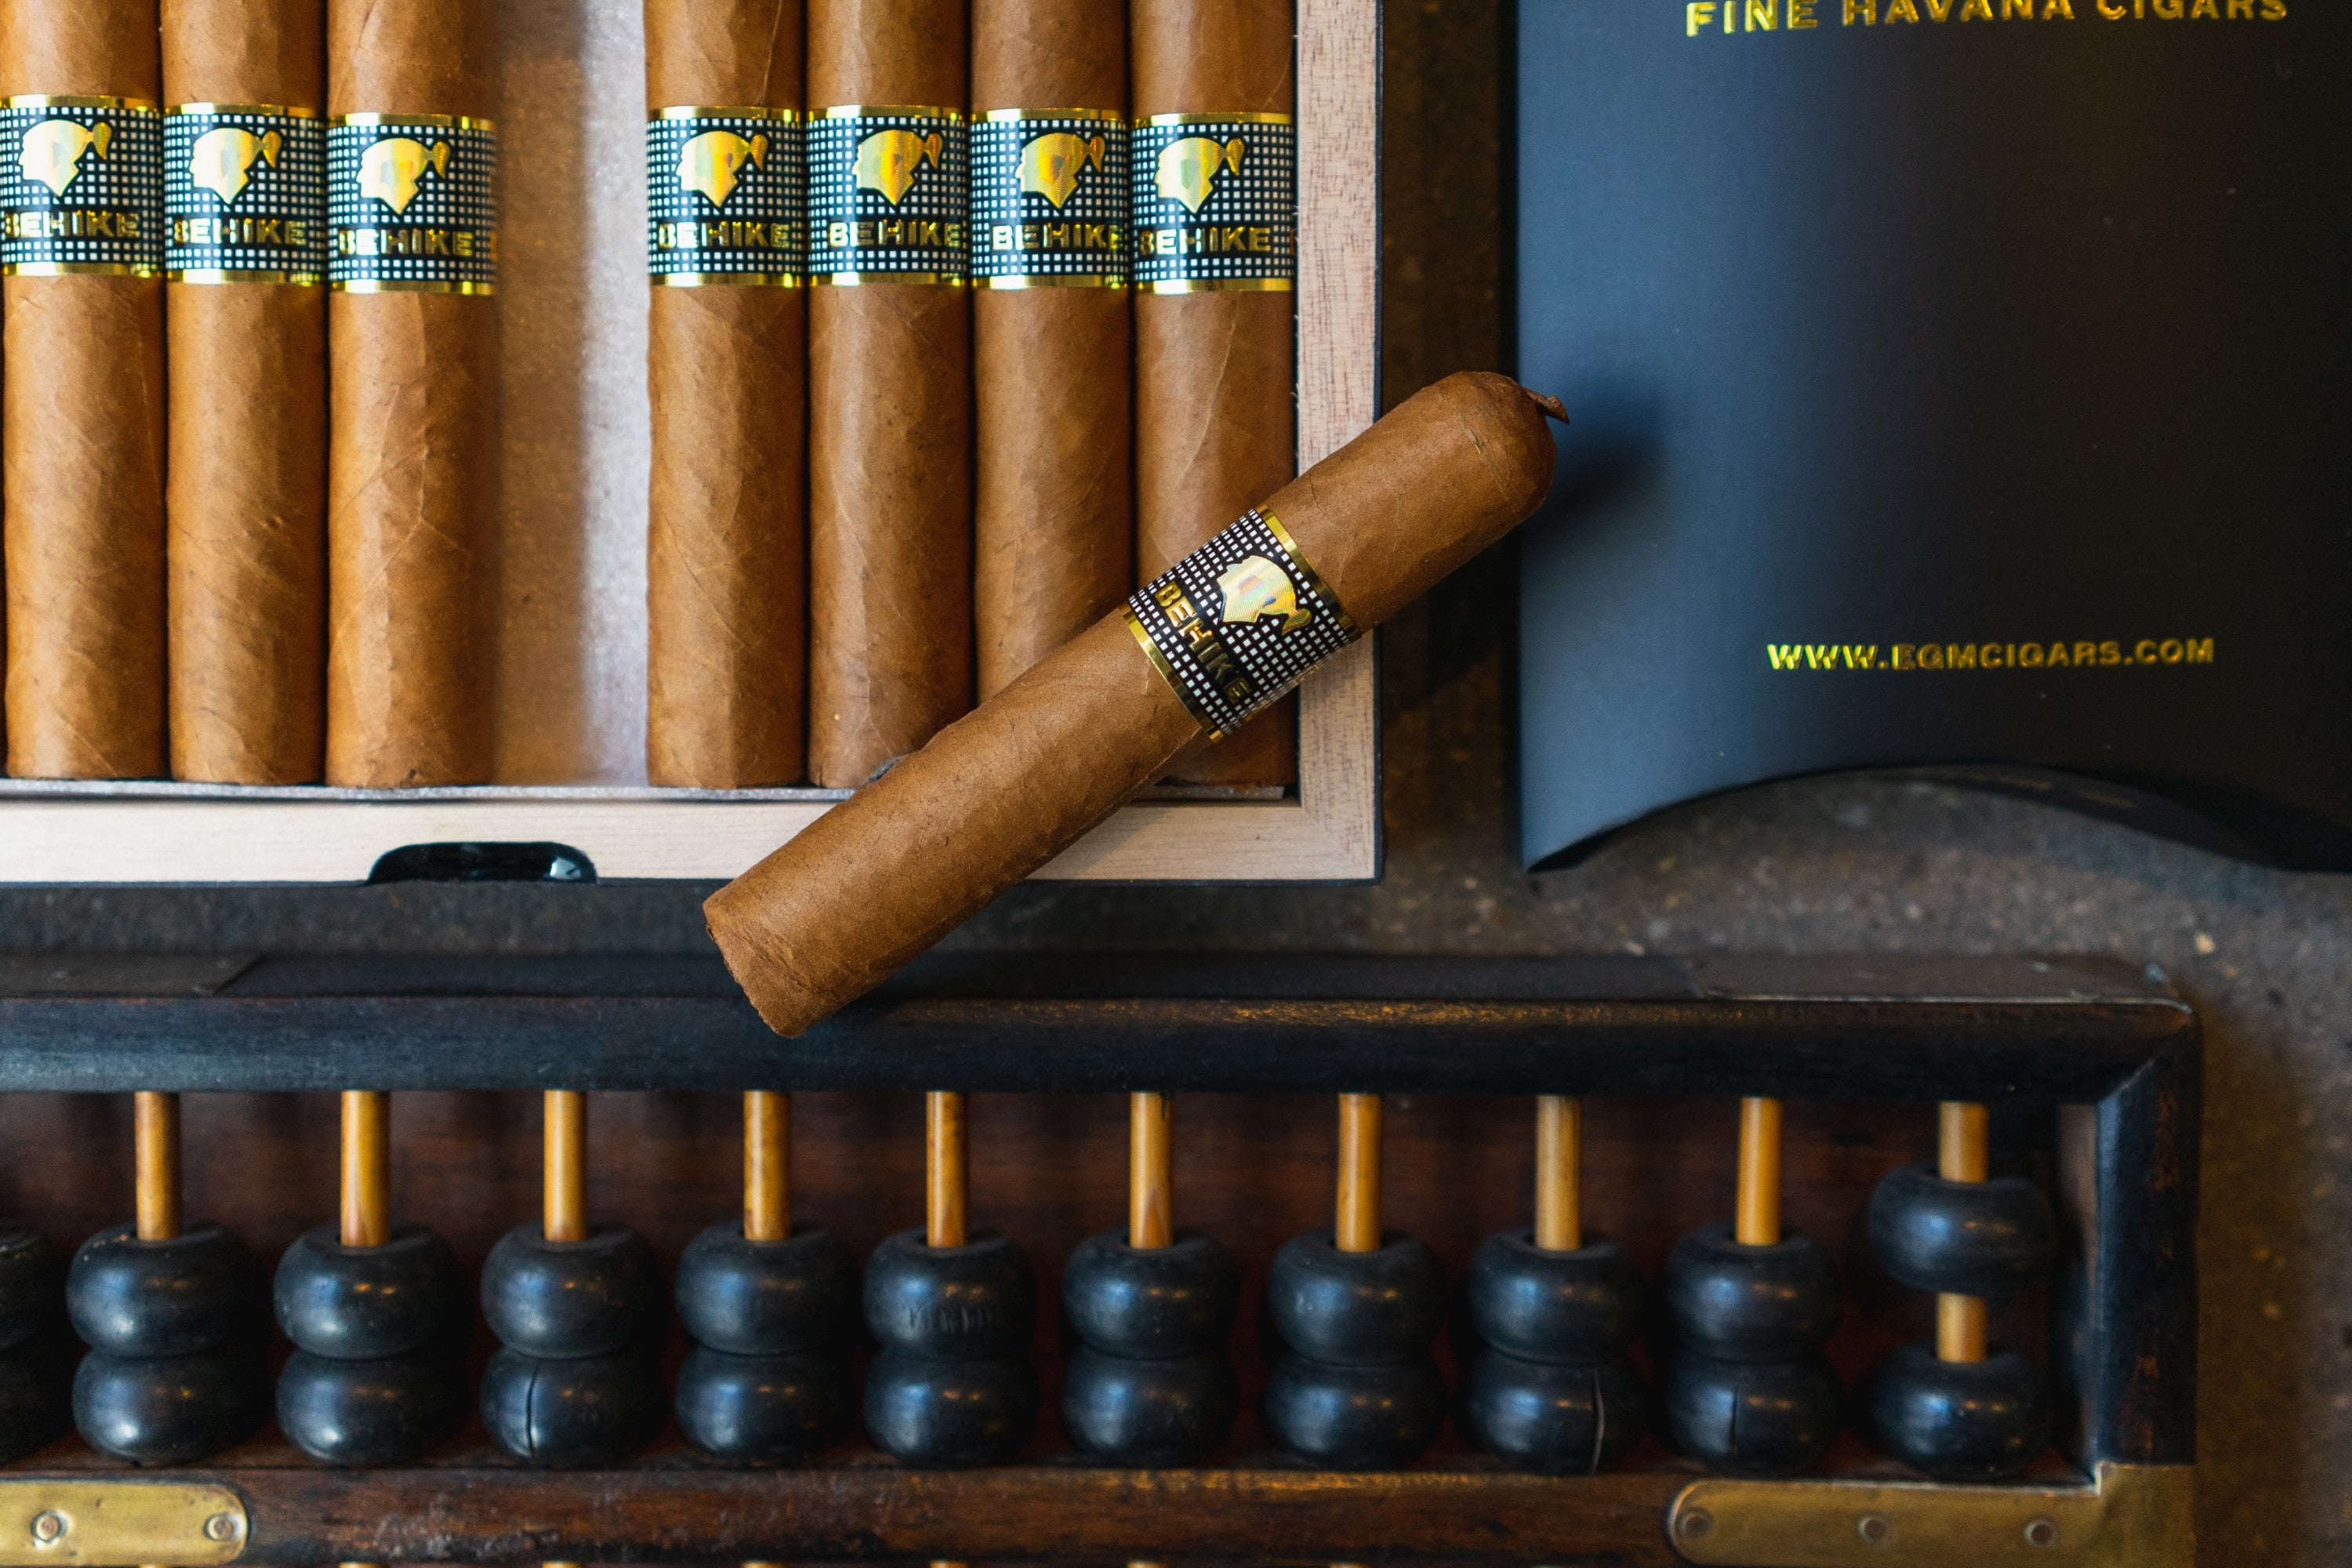 The Cohiba Behike line is the pinnacle of regular production Cuban cigars.